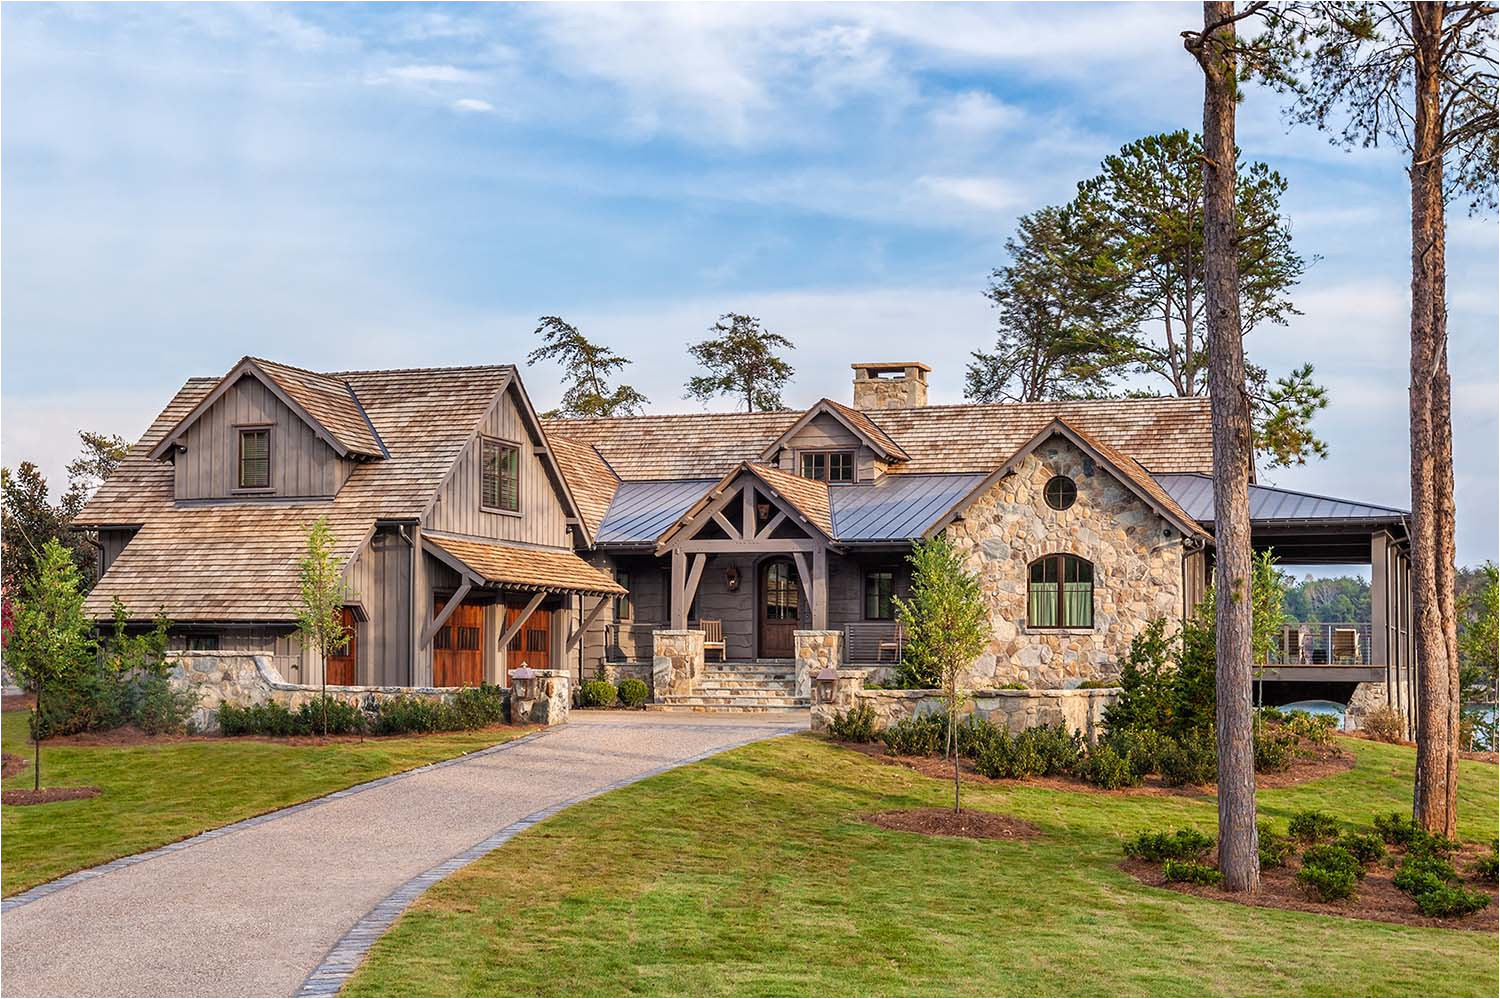 Lake Keowee House Plans Timber Frame Home with Farmhouse Interiors Overlooking